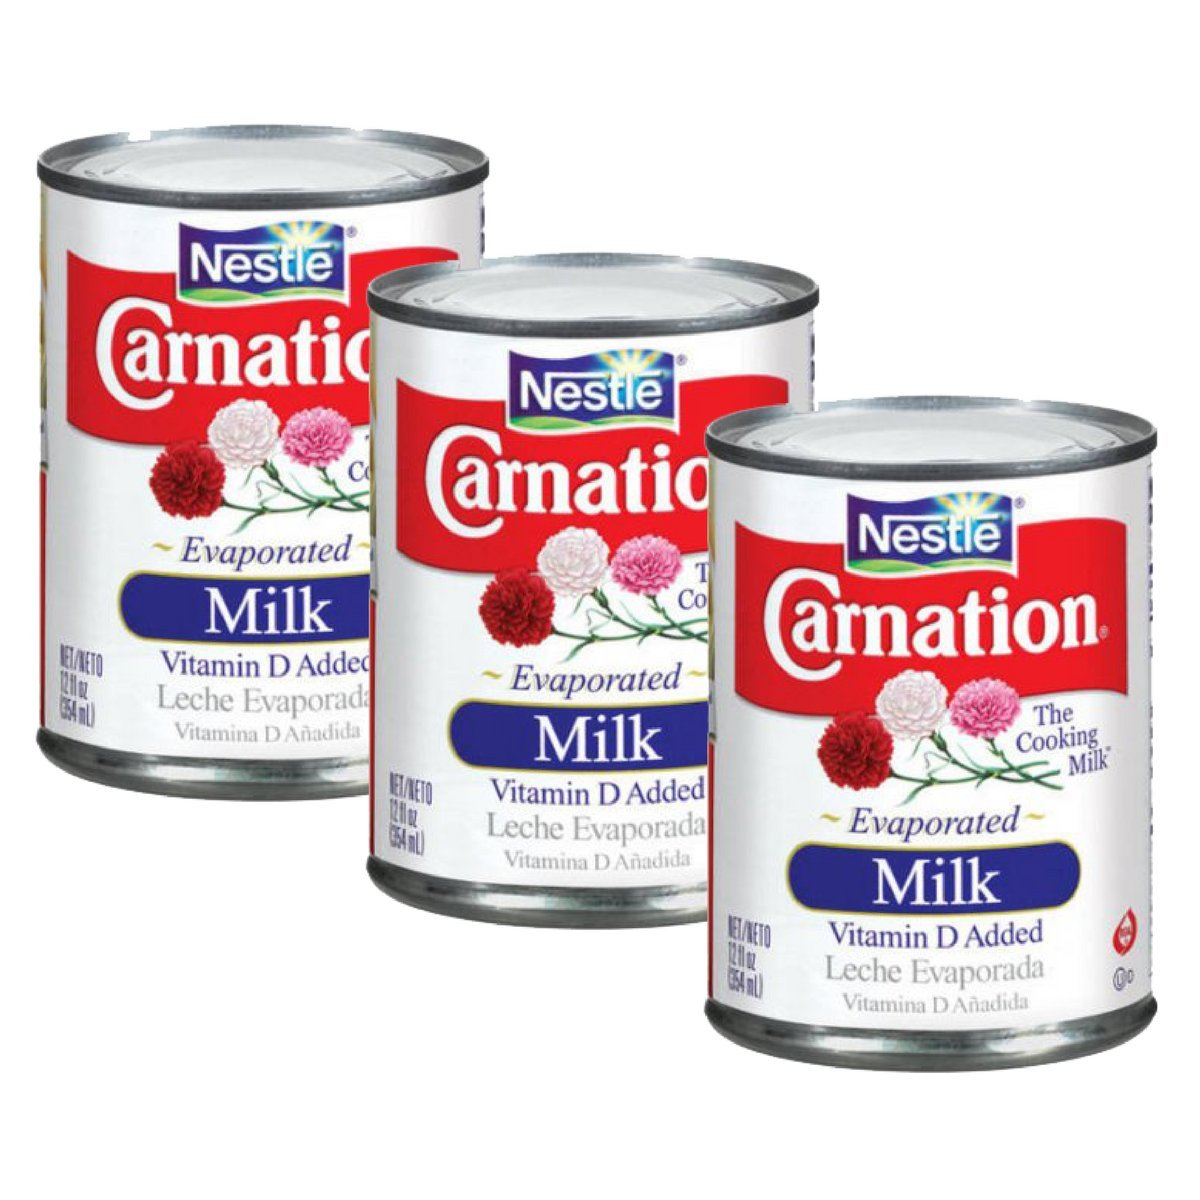 Amazon.com : Nestlé Carnation Evaporated Milk 12oz (Pack of 3) : Grocery & Gourmet Food